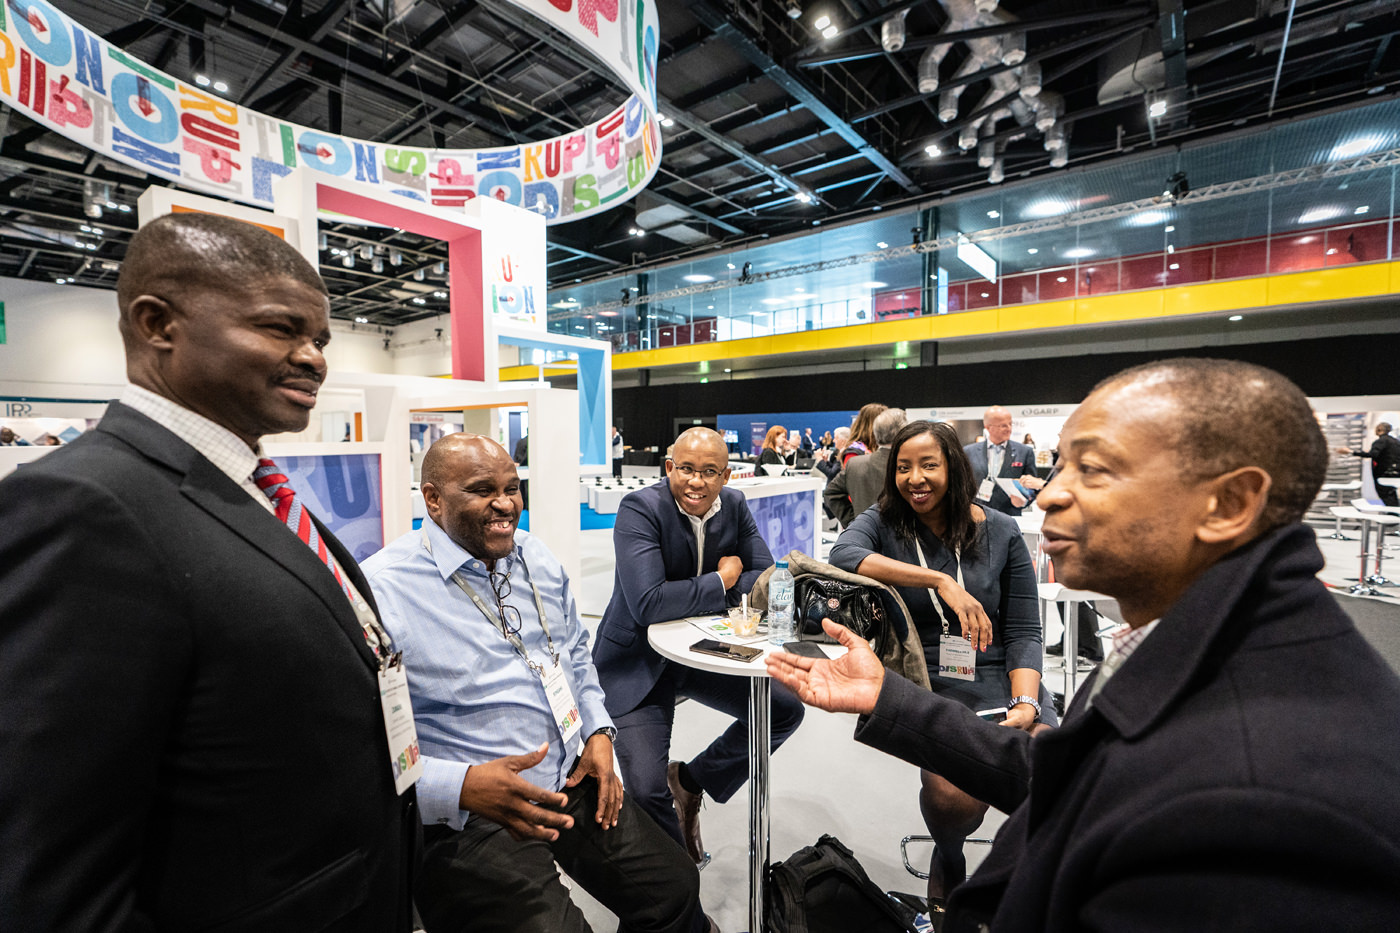 Delegates network at the CFA Conference in the Capital Hall at ExCel London